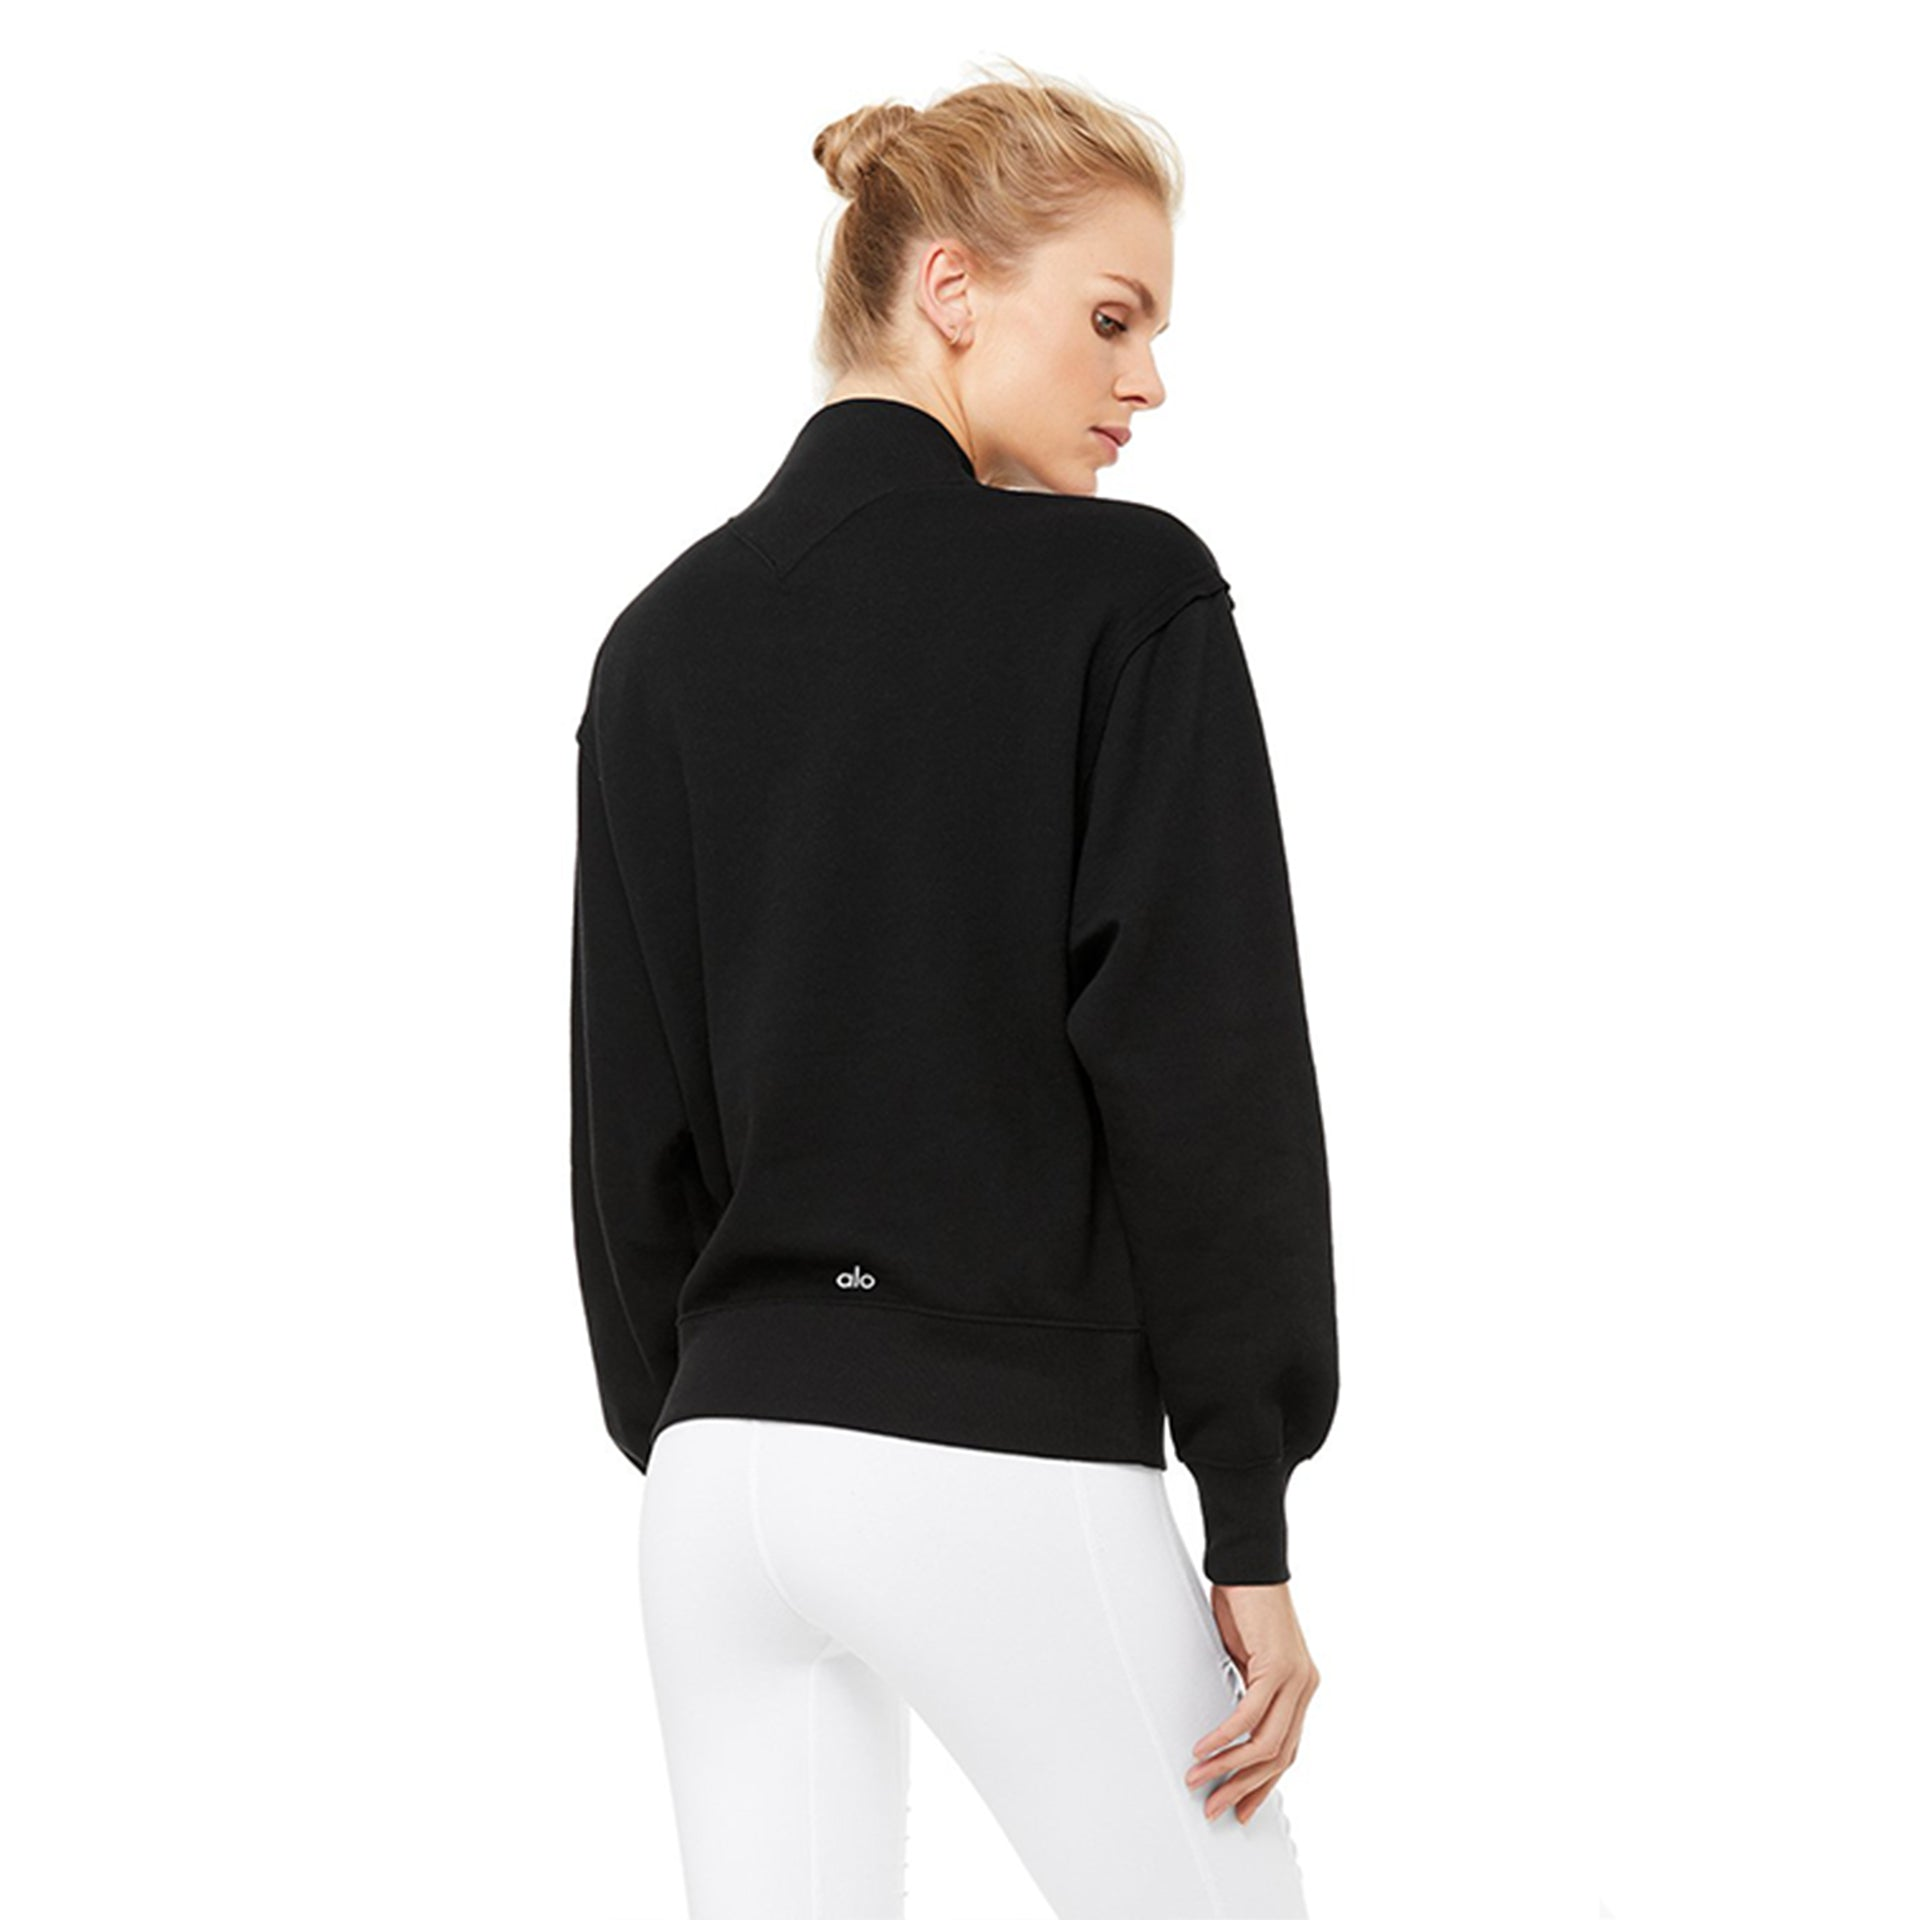 Alo Yoga Freestyle Sweatshirt in Black